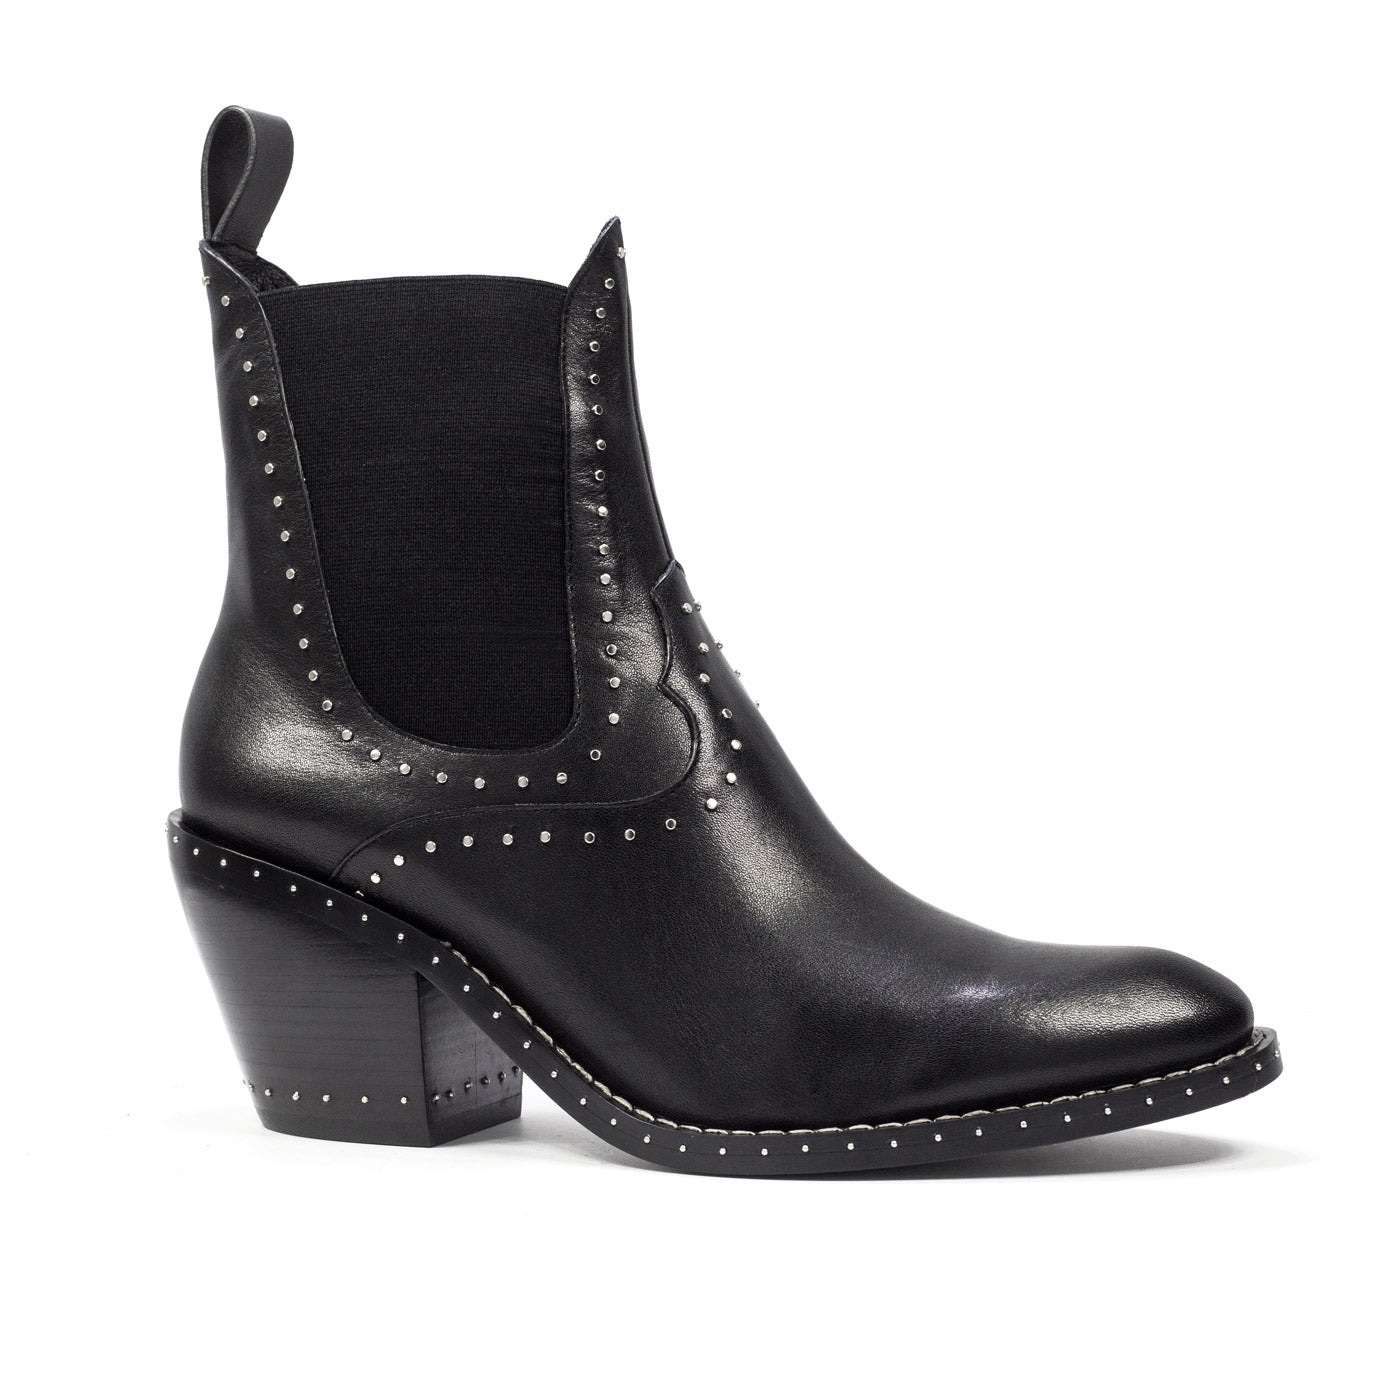 The Cetus cowboy boots with studs from Lola Cruz in leather.